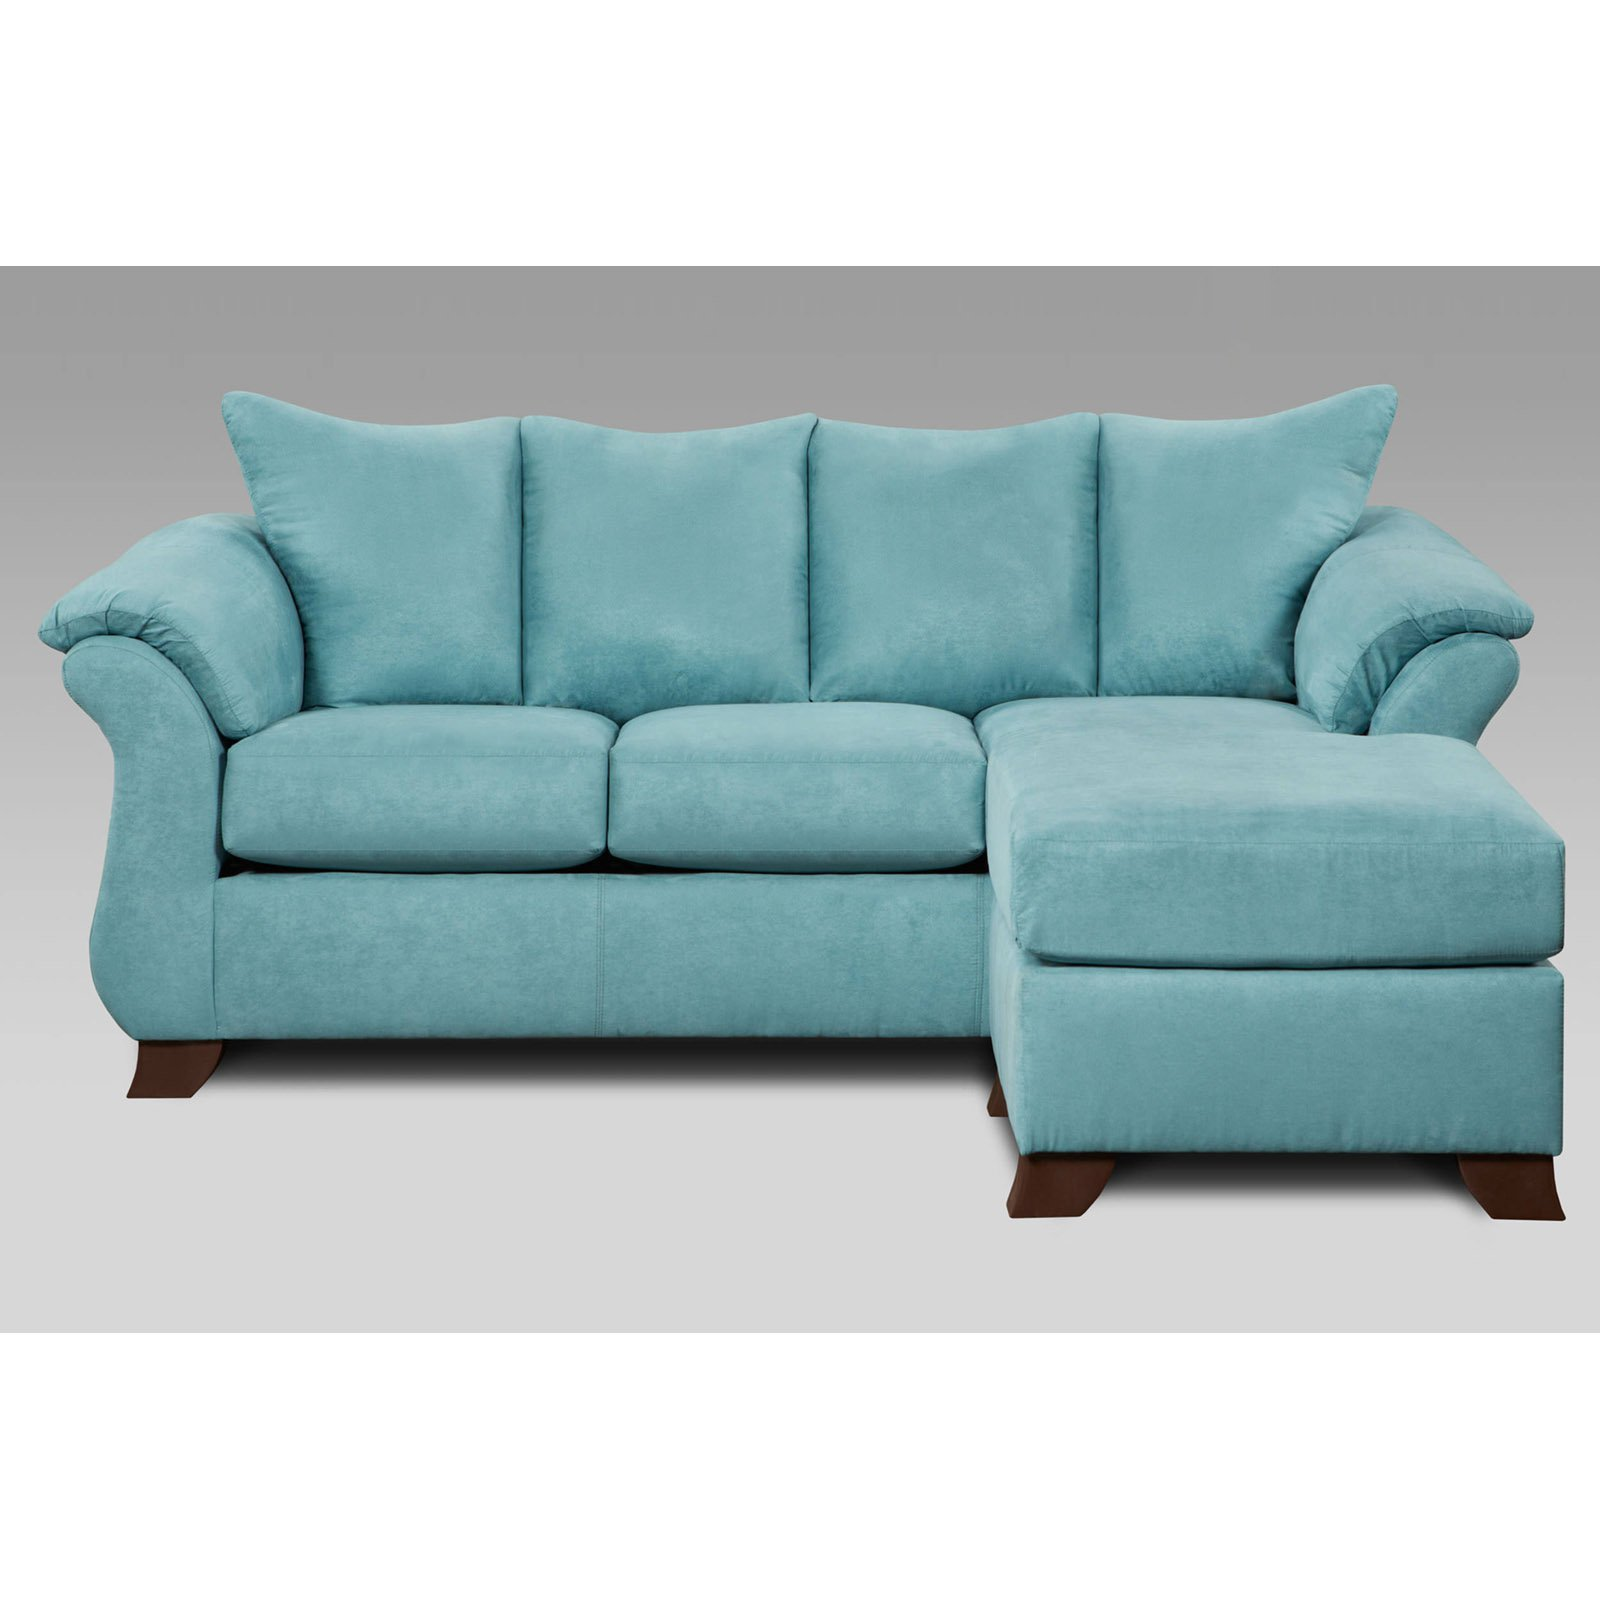 Chelsea Home Furniture Payton Sectional Sofa With Chaise